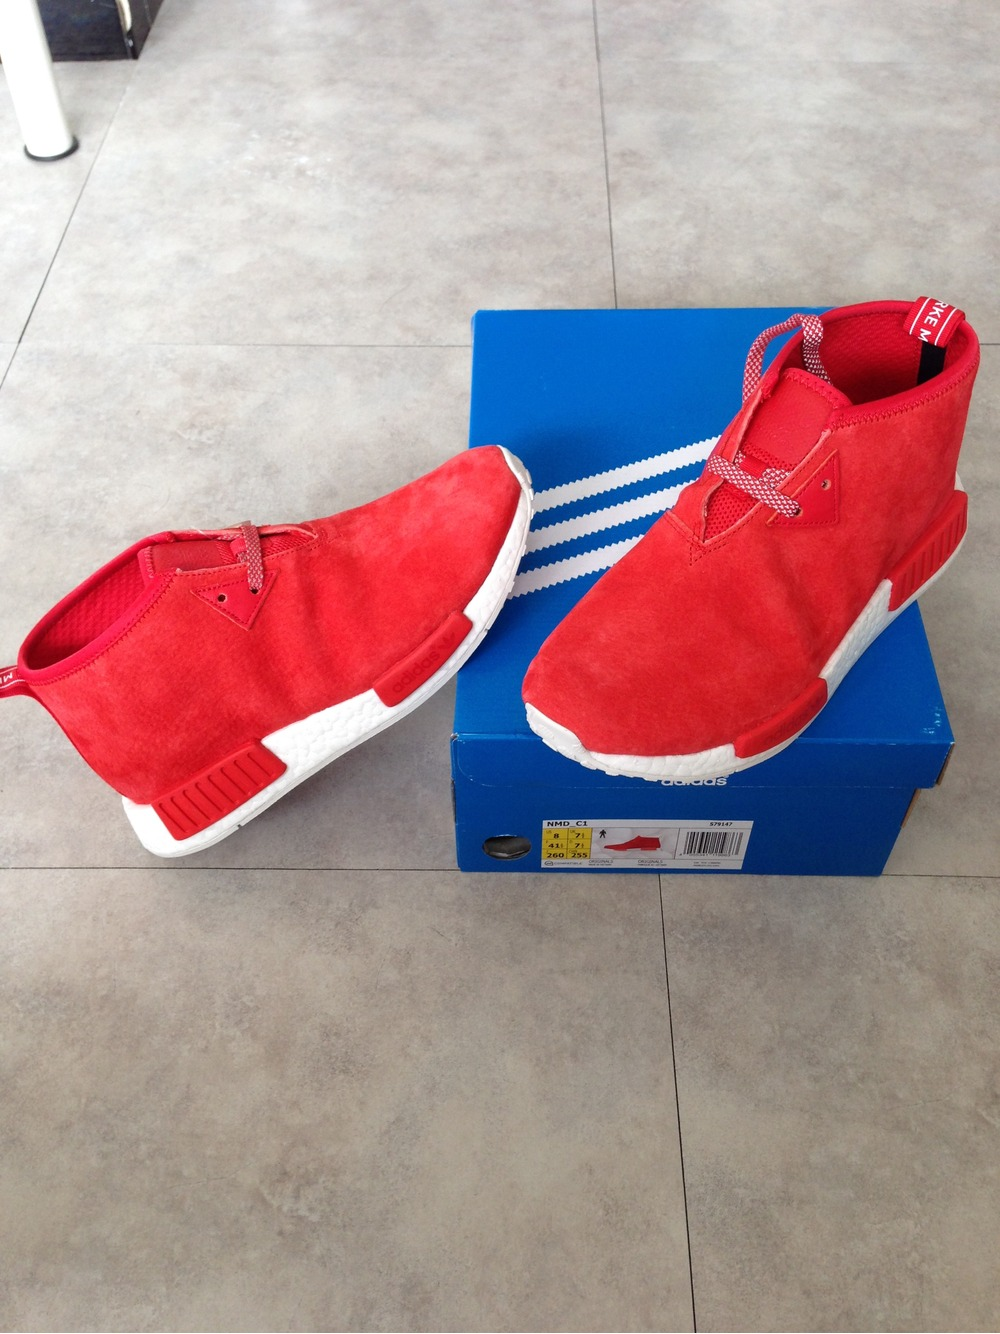 Cheap Adidas x White Mountaineering NMD Trail PK (red / blue) BA7519